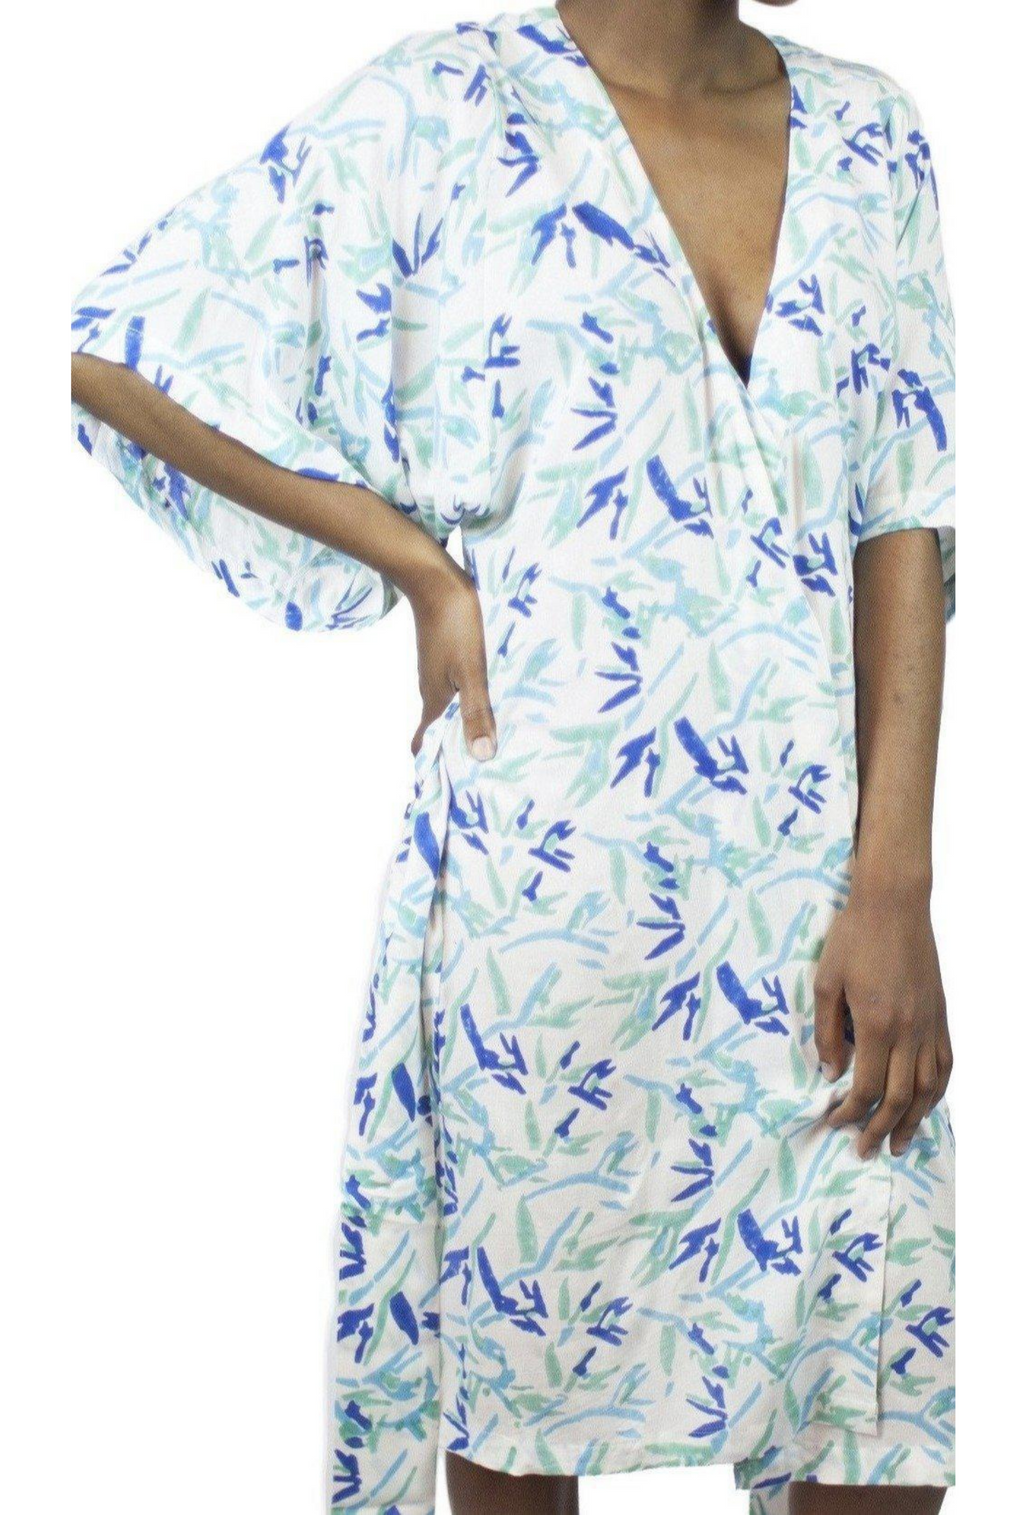 Bird of Paradise Robe in Ocean Blues